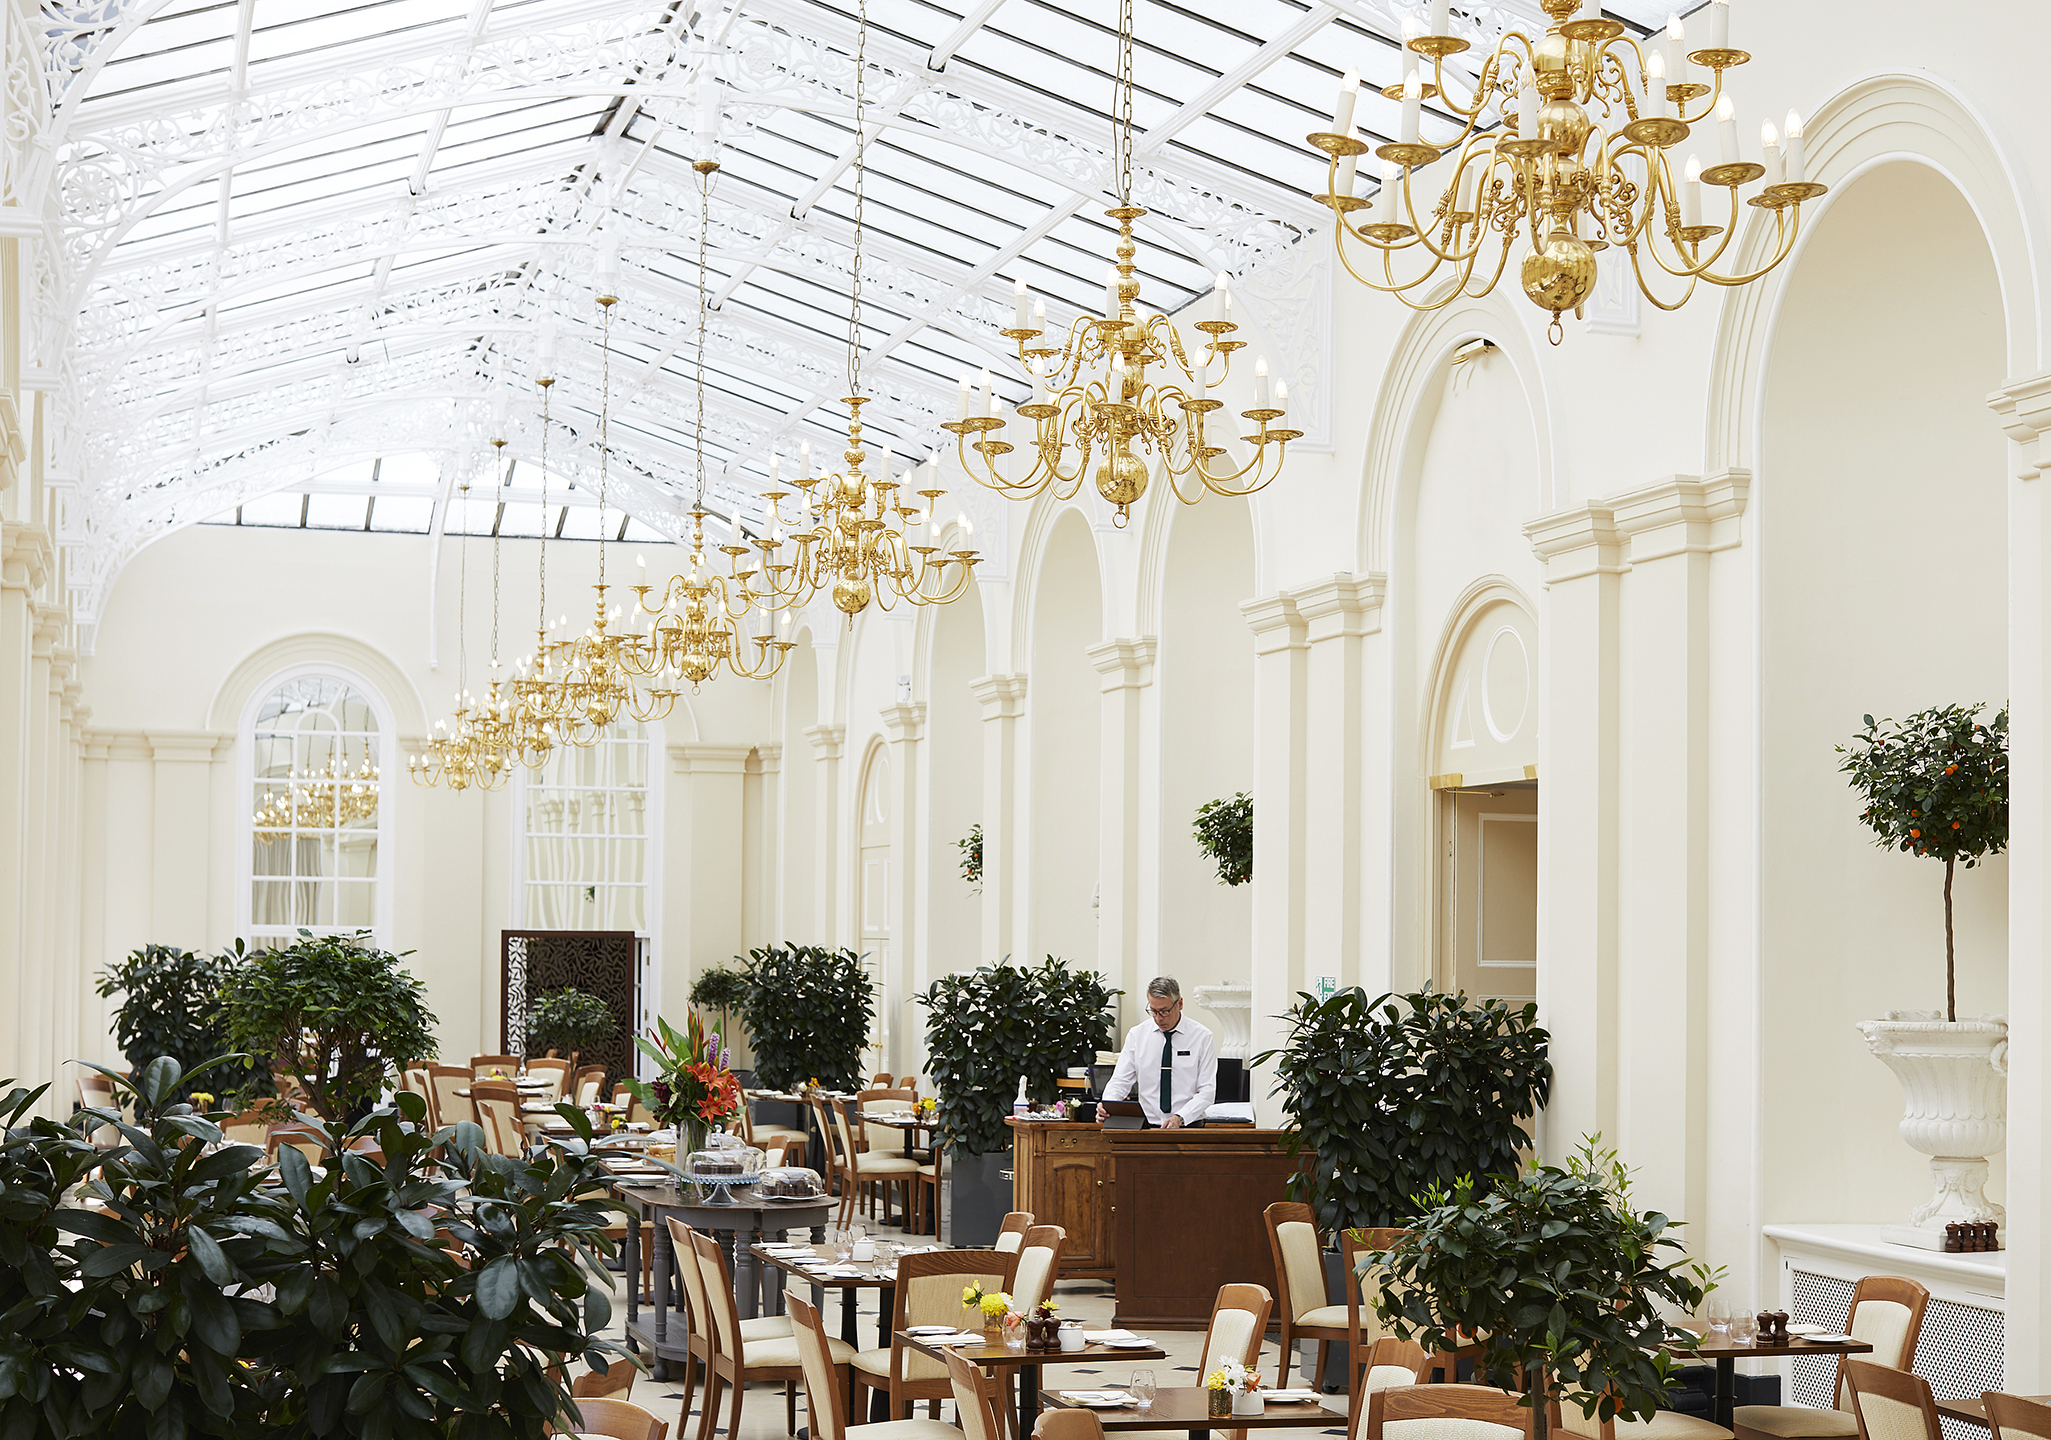 Image of The Orangery at Blenheim Palace